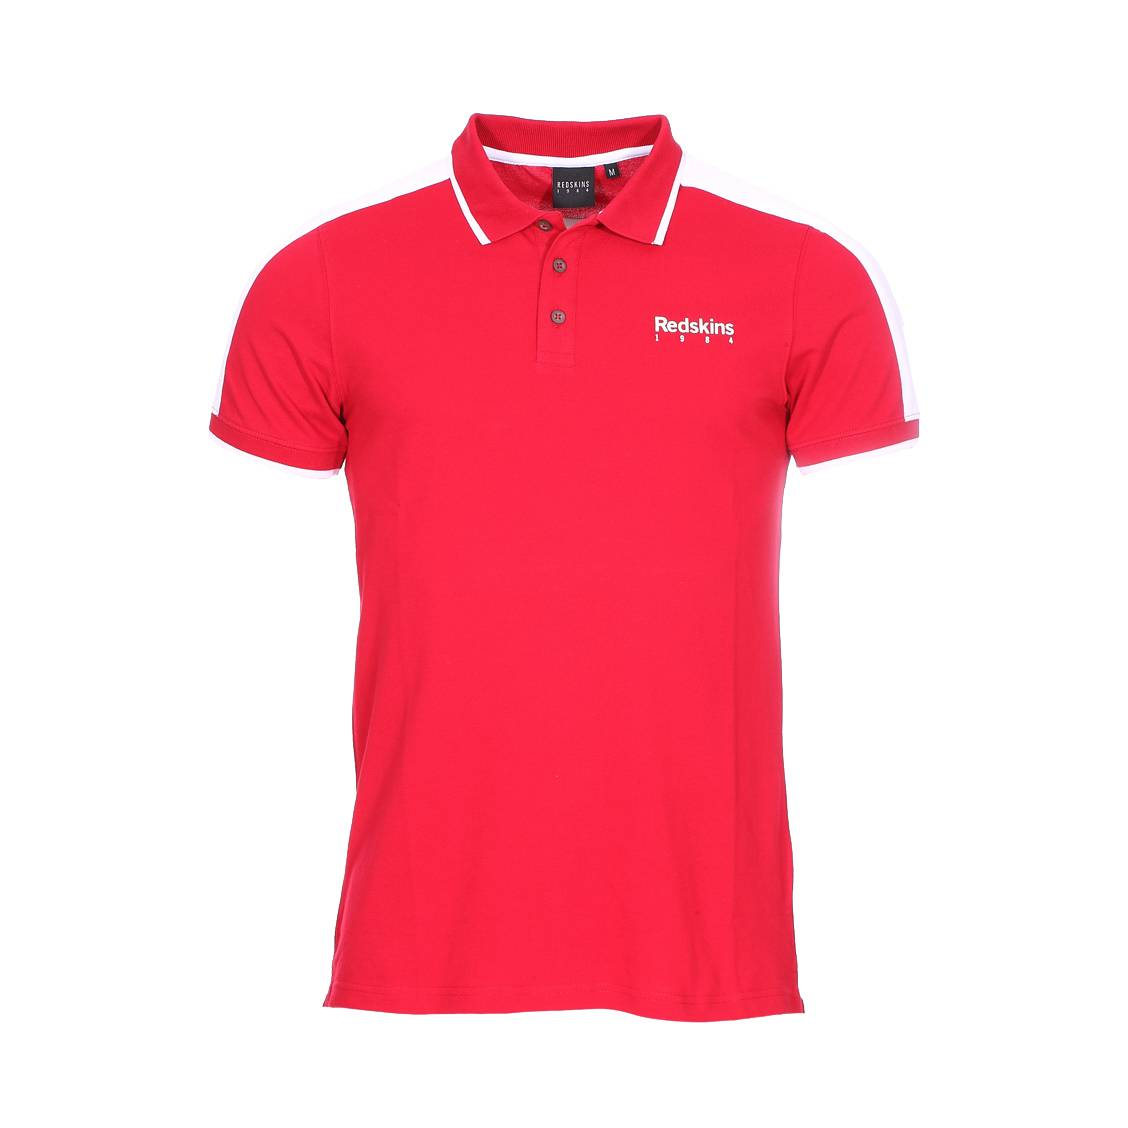 Polo  bheme en coton stretch rouge à oppositions blanches